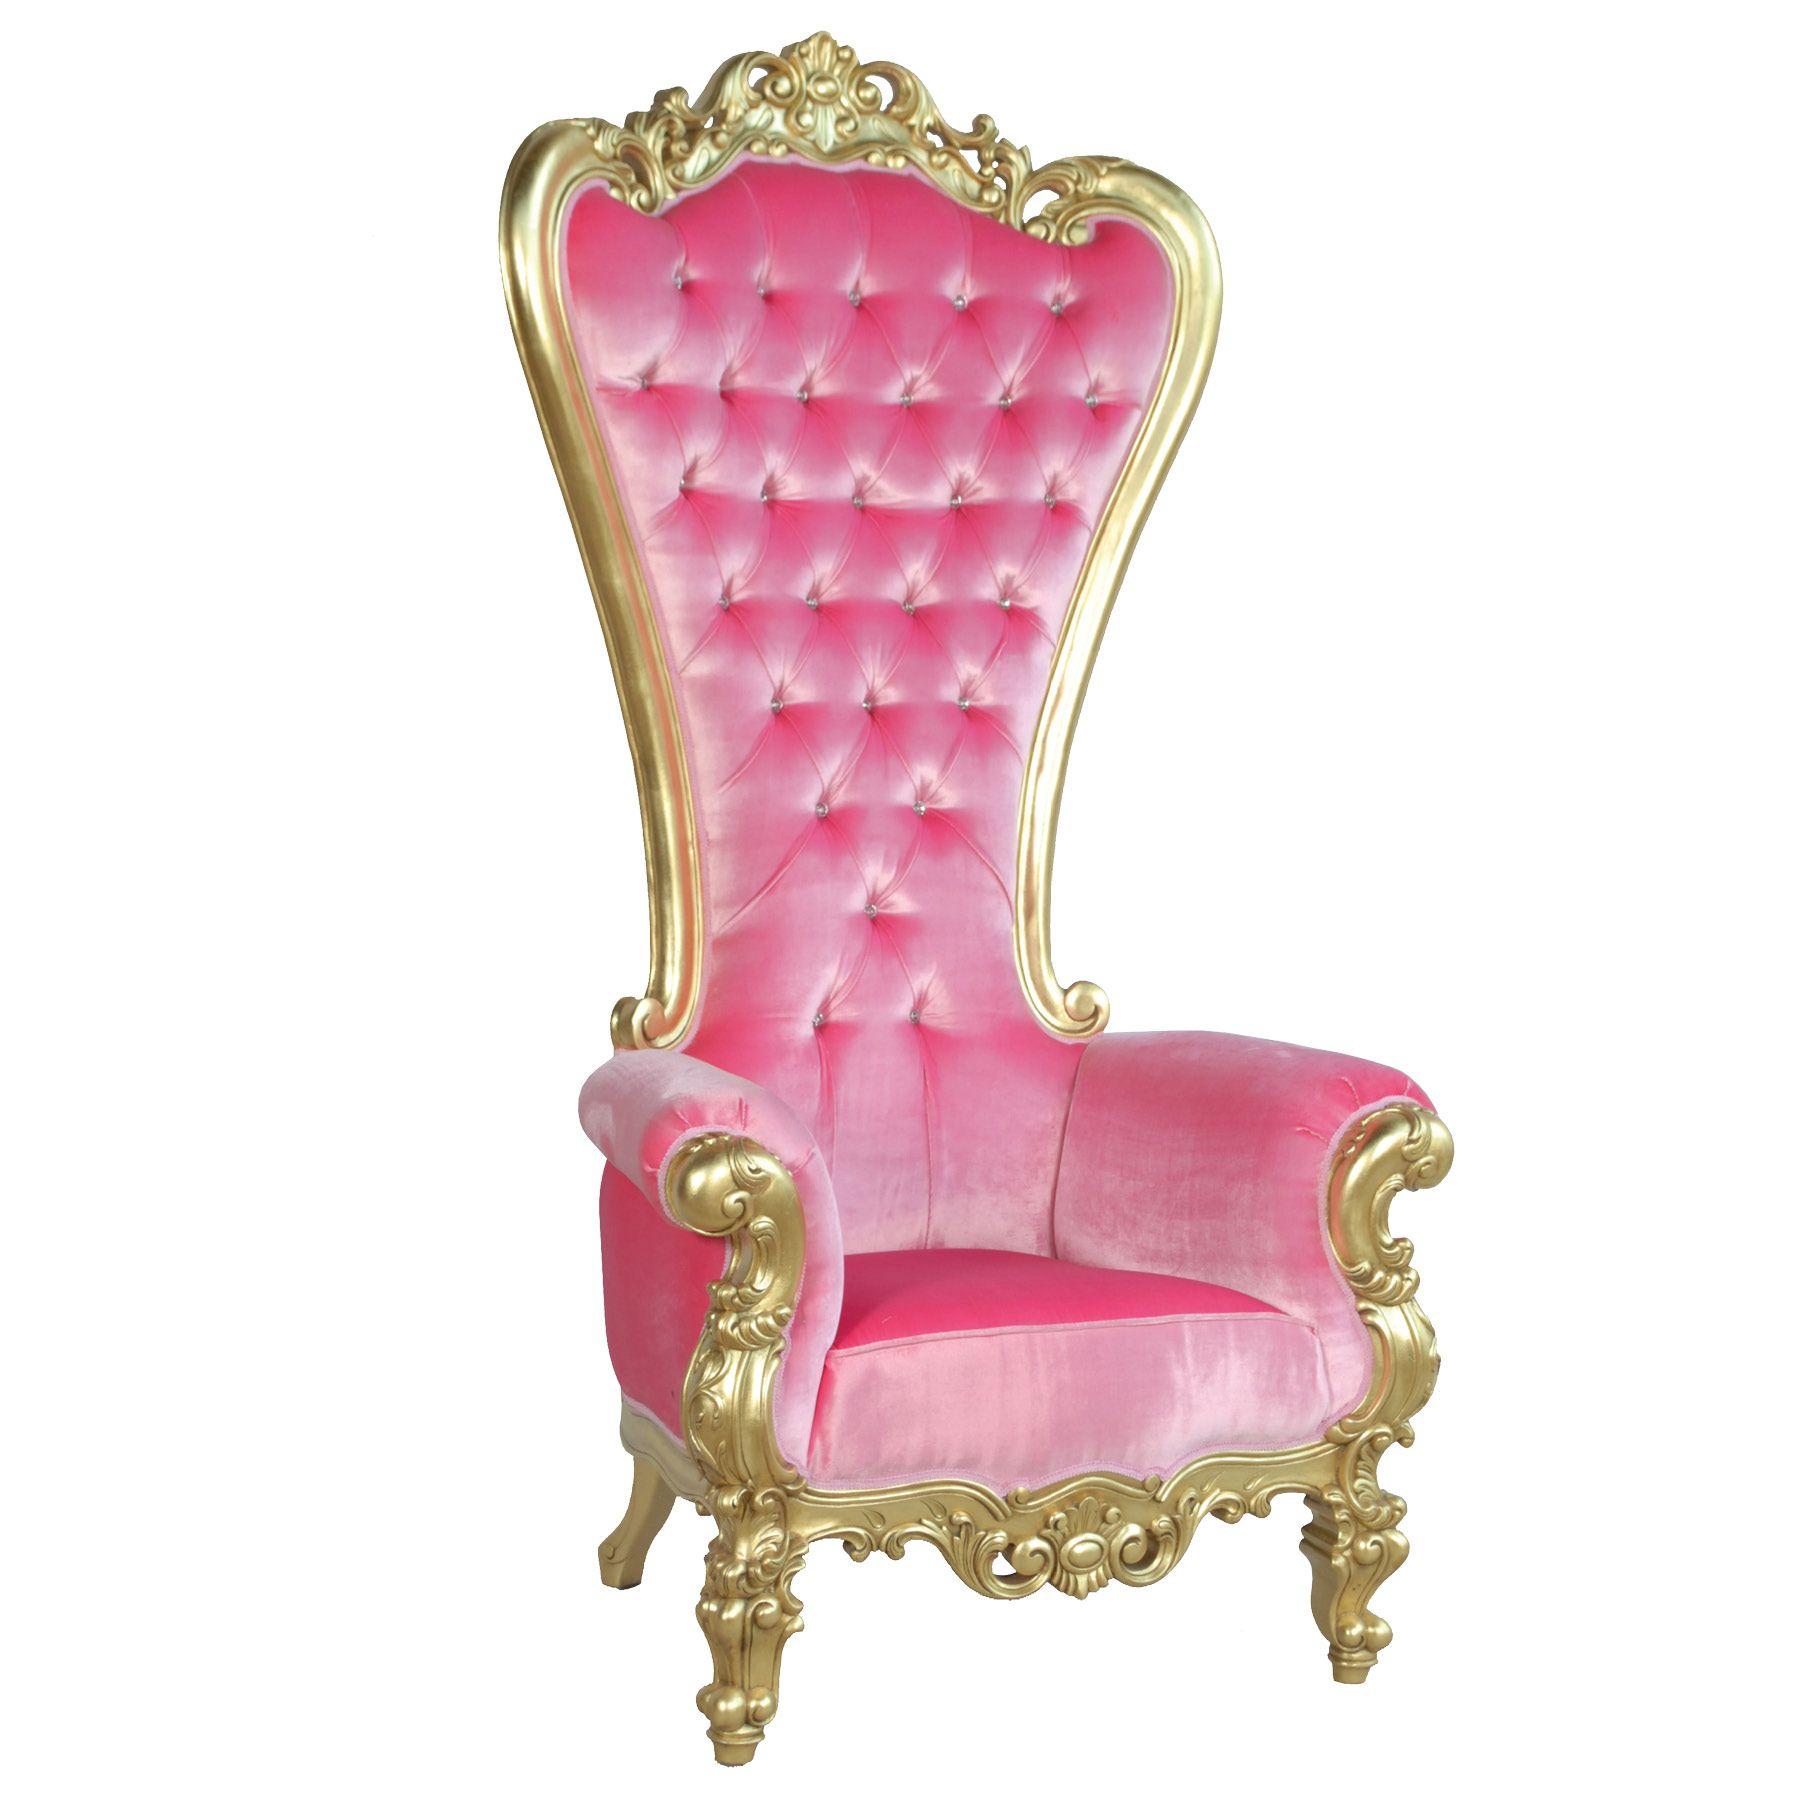 Absolom Roche Chair Gold and Pink Velvet fabulous and baroque